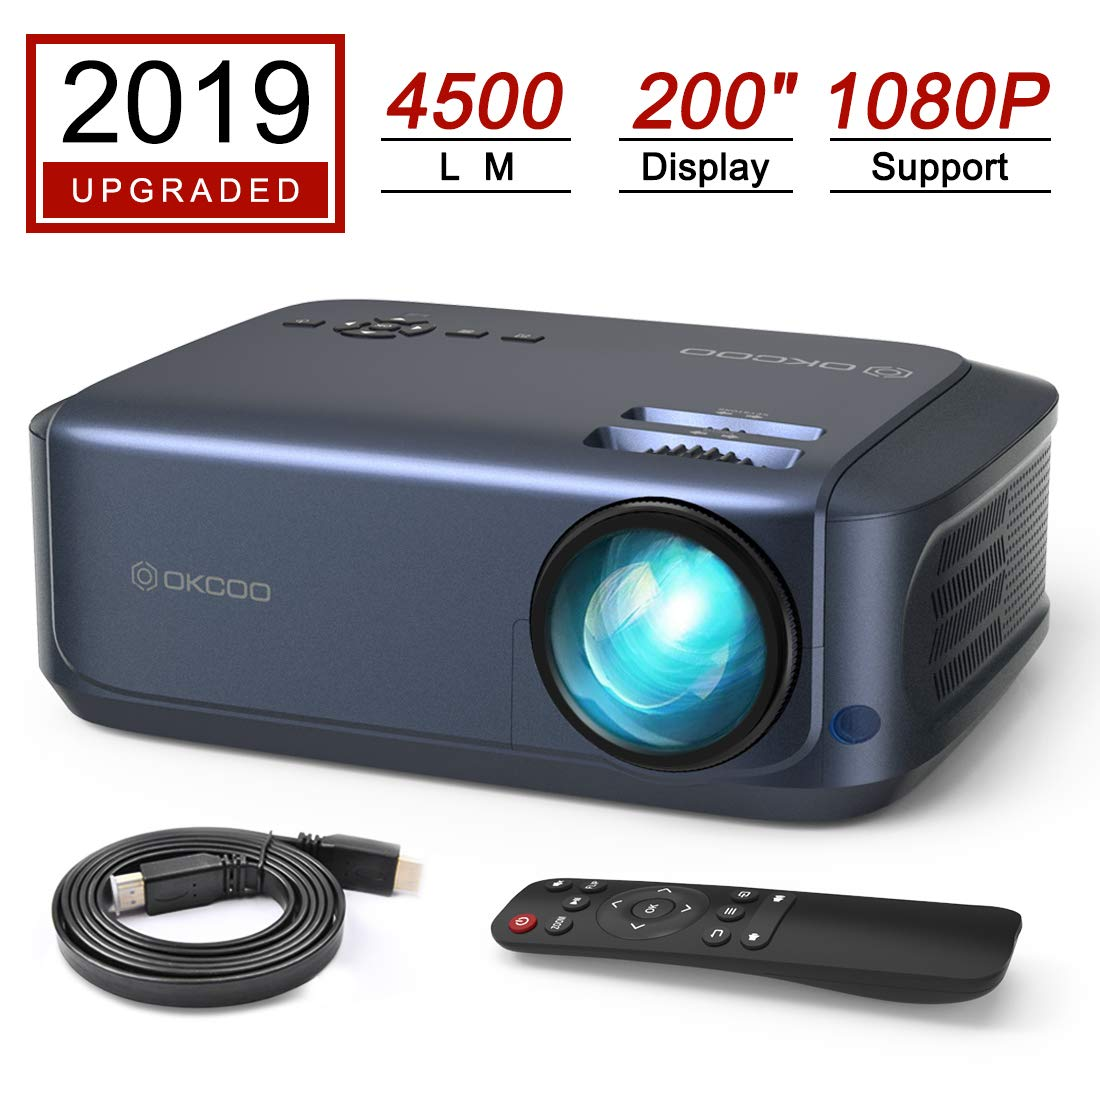 OKCOO Video Projector, Full HD 1080P 4500lm 200'' Display Home Theater Business Office Overhead Projector for Presentation Compatible with PC, Laptop, TV Stick, PS4, HDMI, VGA, TF, USB, AV, Blue by OKCOO